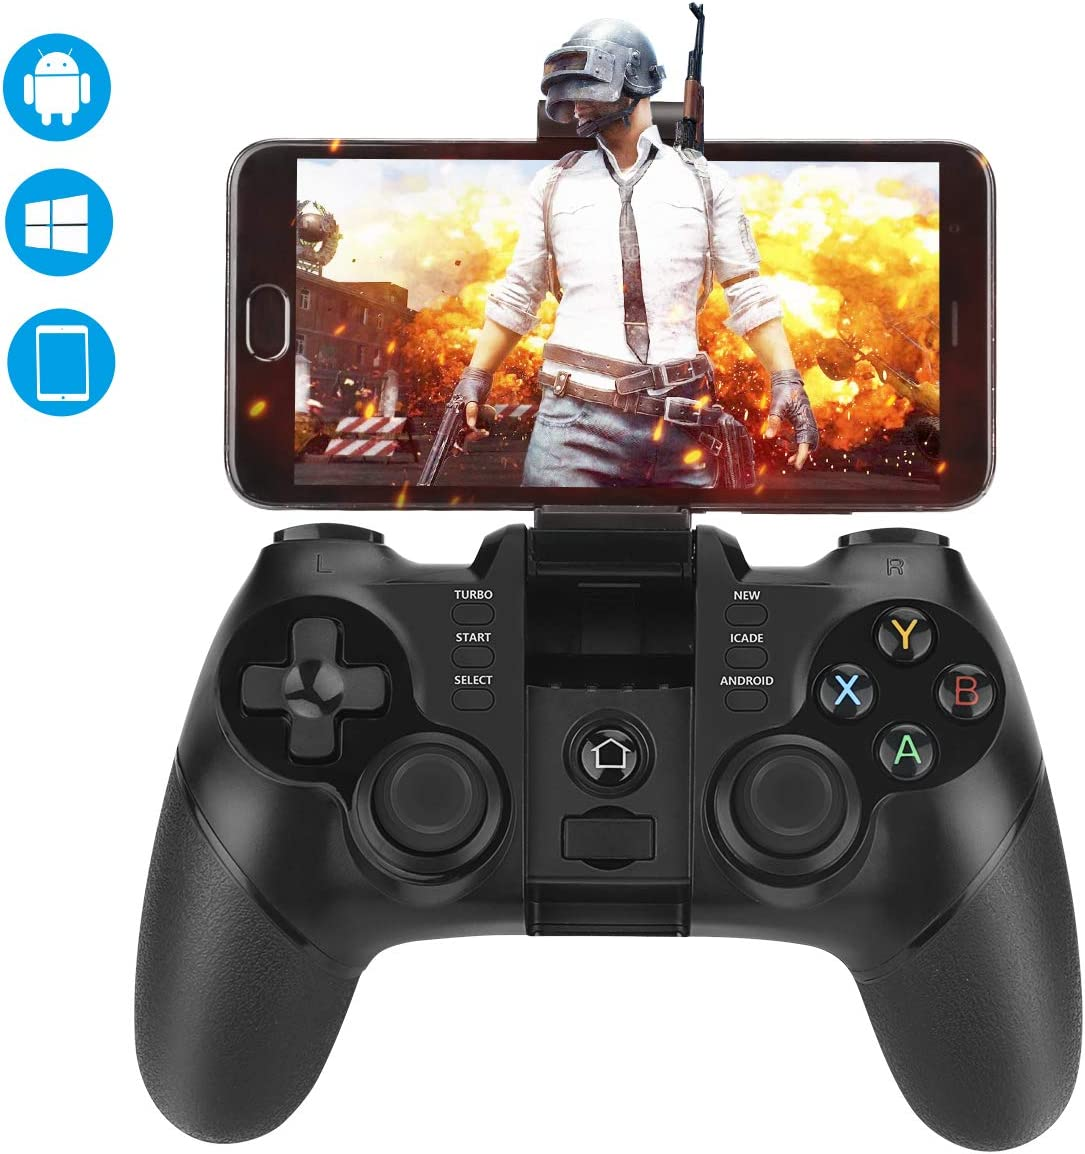 Mando Inalámbrico, Achort Gamepad Bluetooth Mando PS3 Controlador de 2,4 GHz compatible con iOS, Windows PC, PS3, Smart-TV, Samsung VR, Smartphone / Tableta Android etc